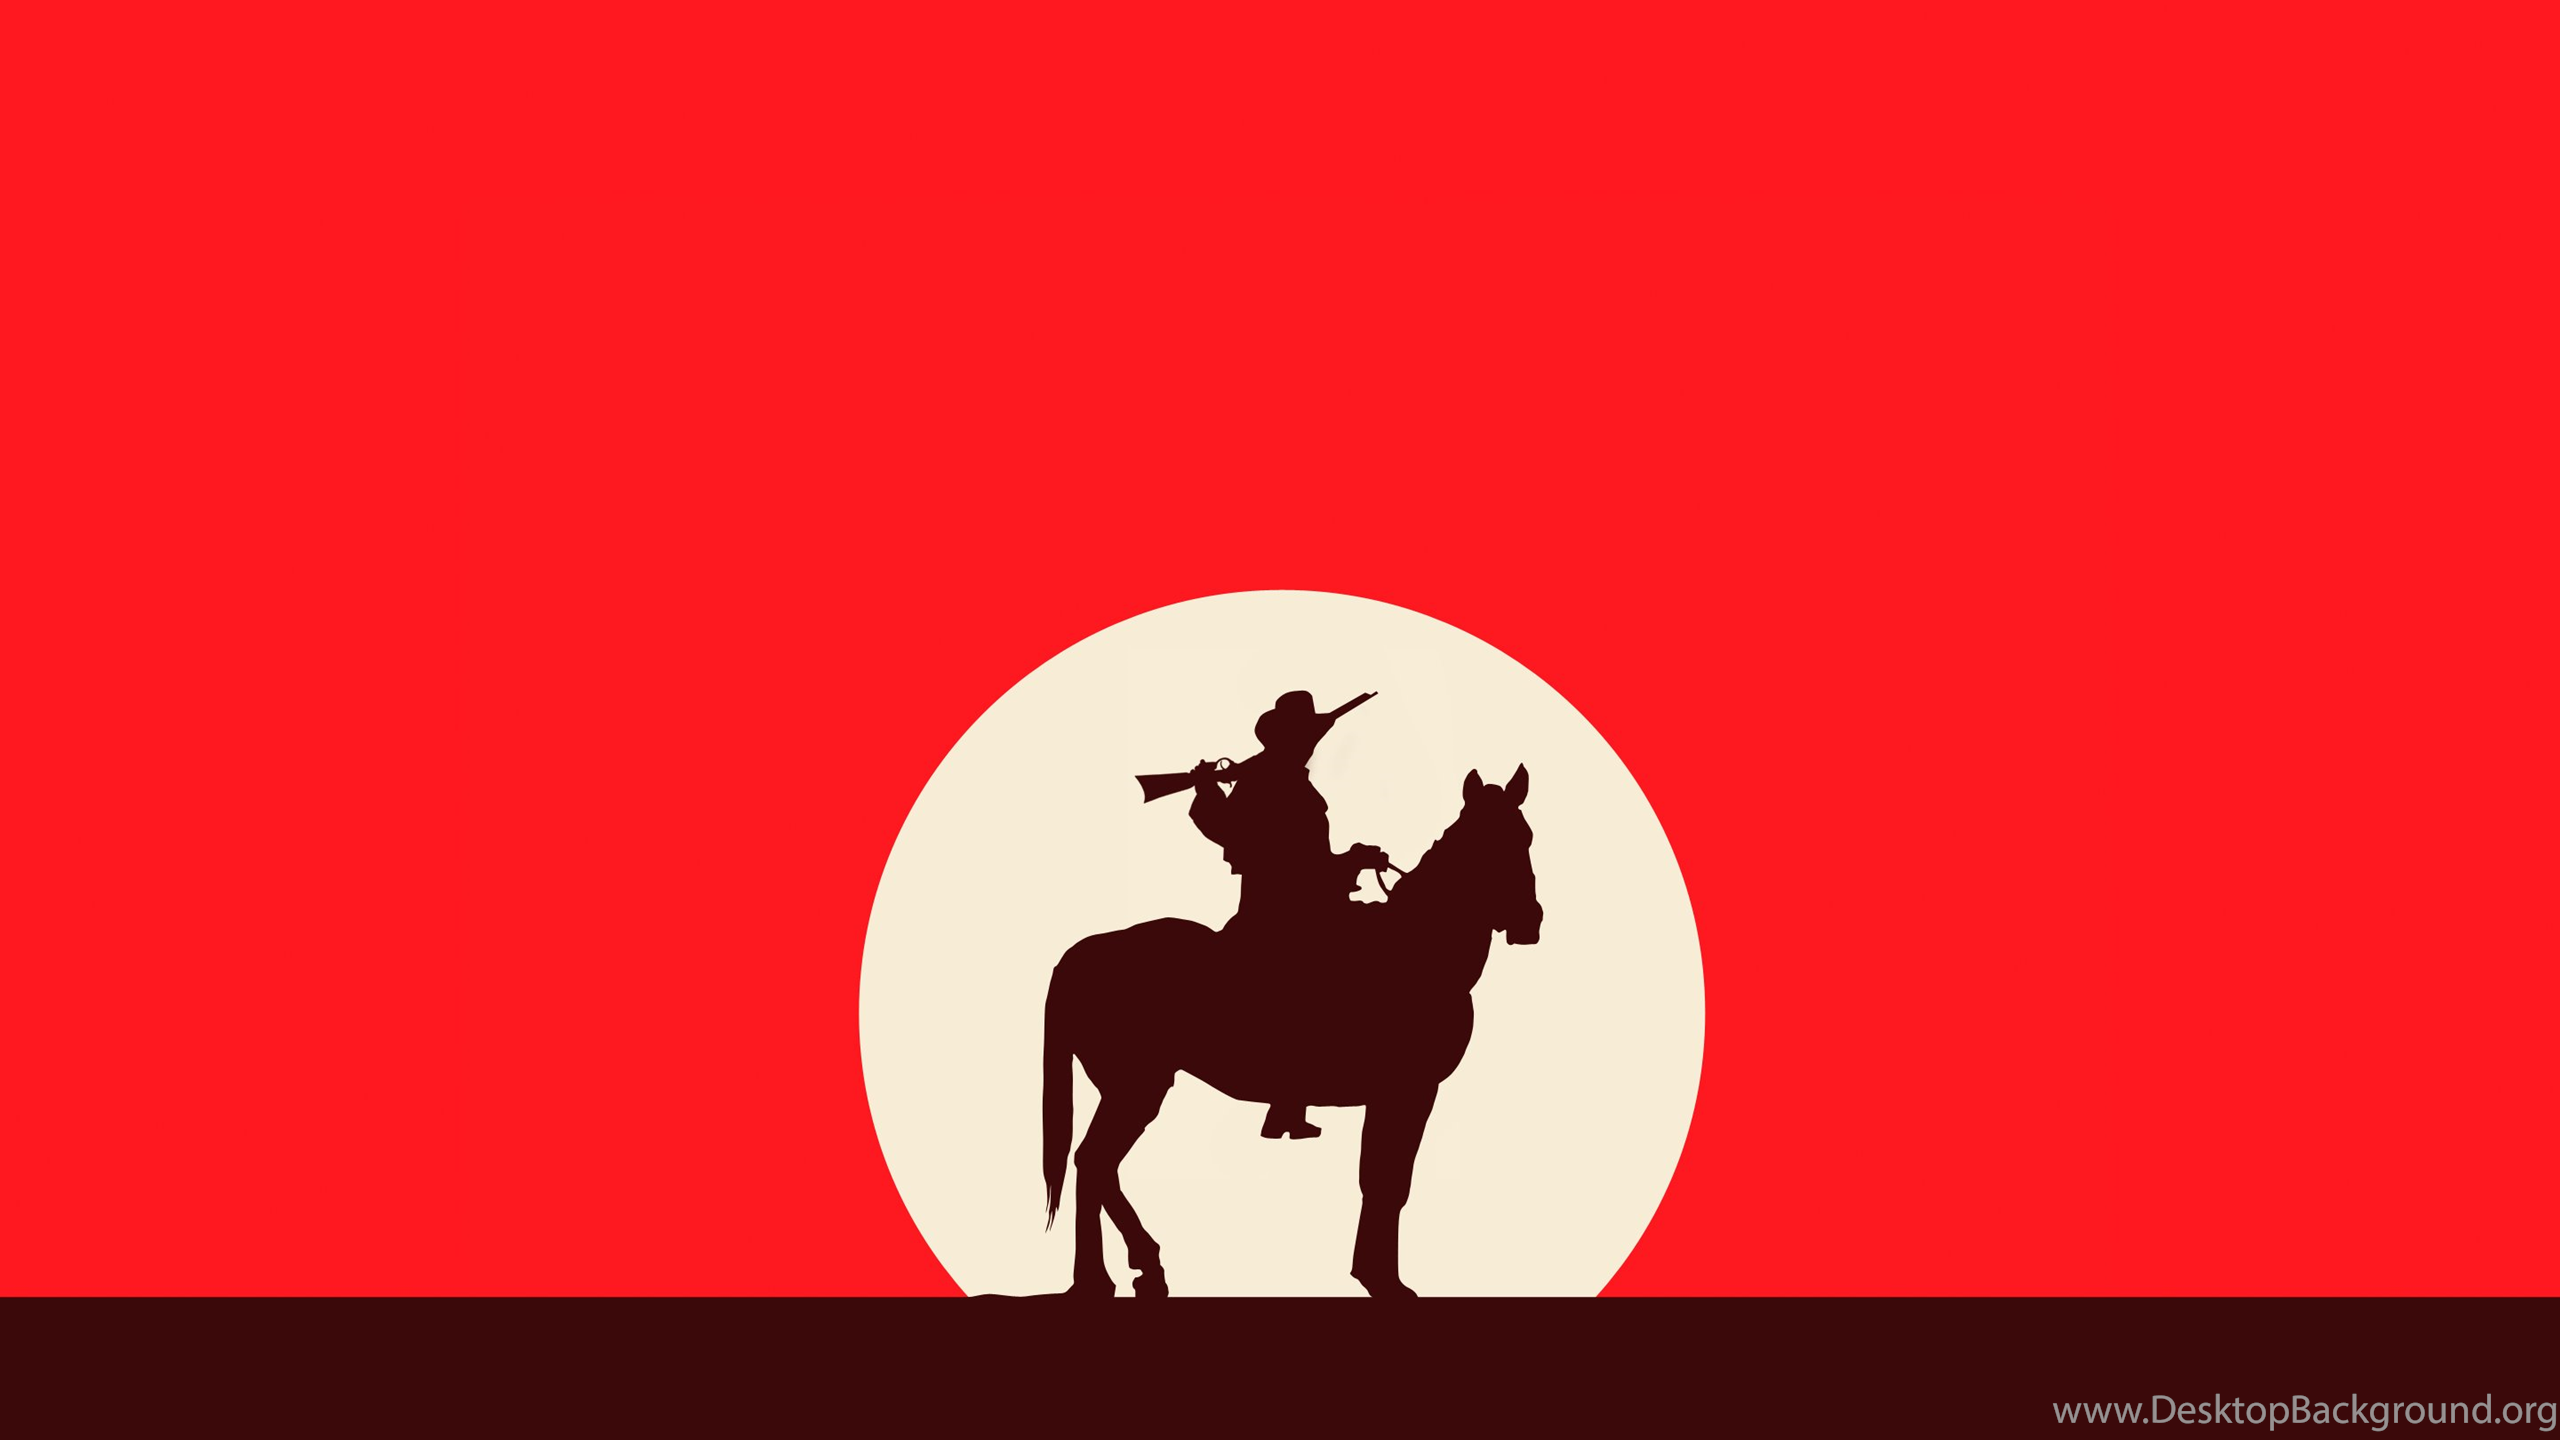 2560x1440 Silhouette Of A Cowboy Game Red Dead Redemption Wallpapers